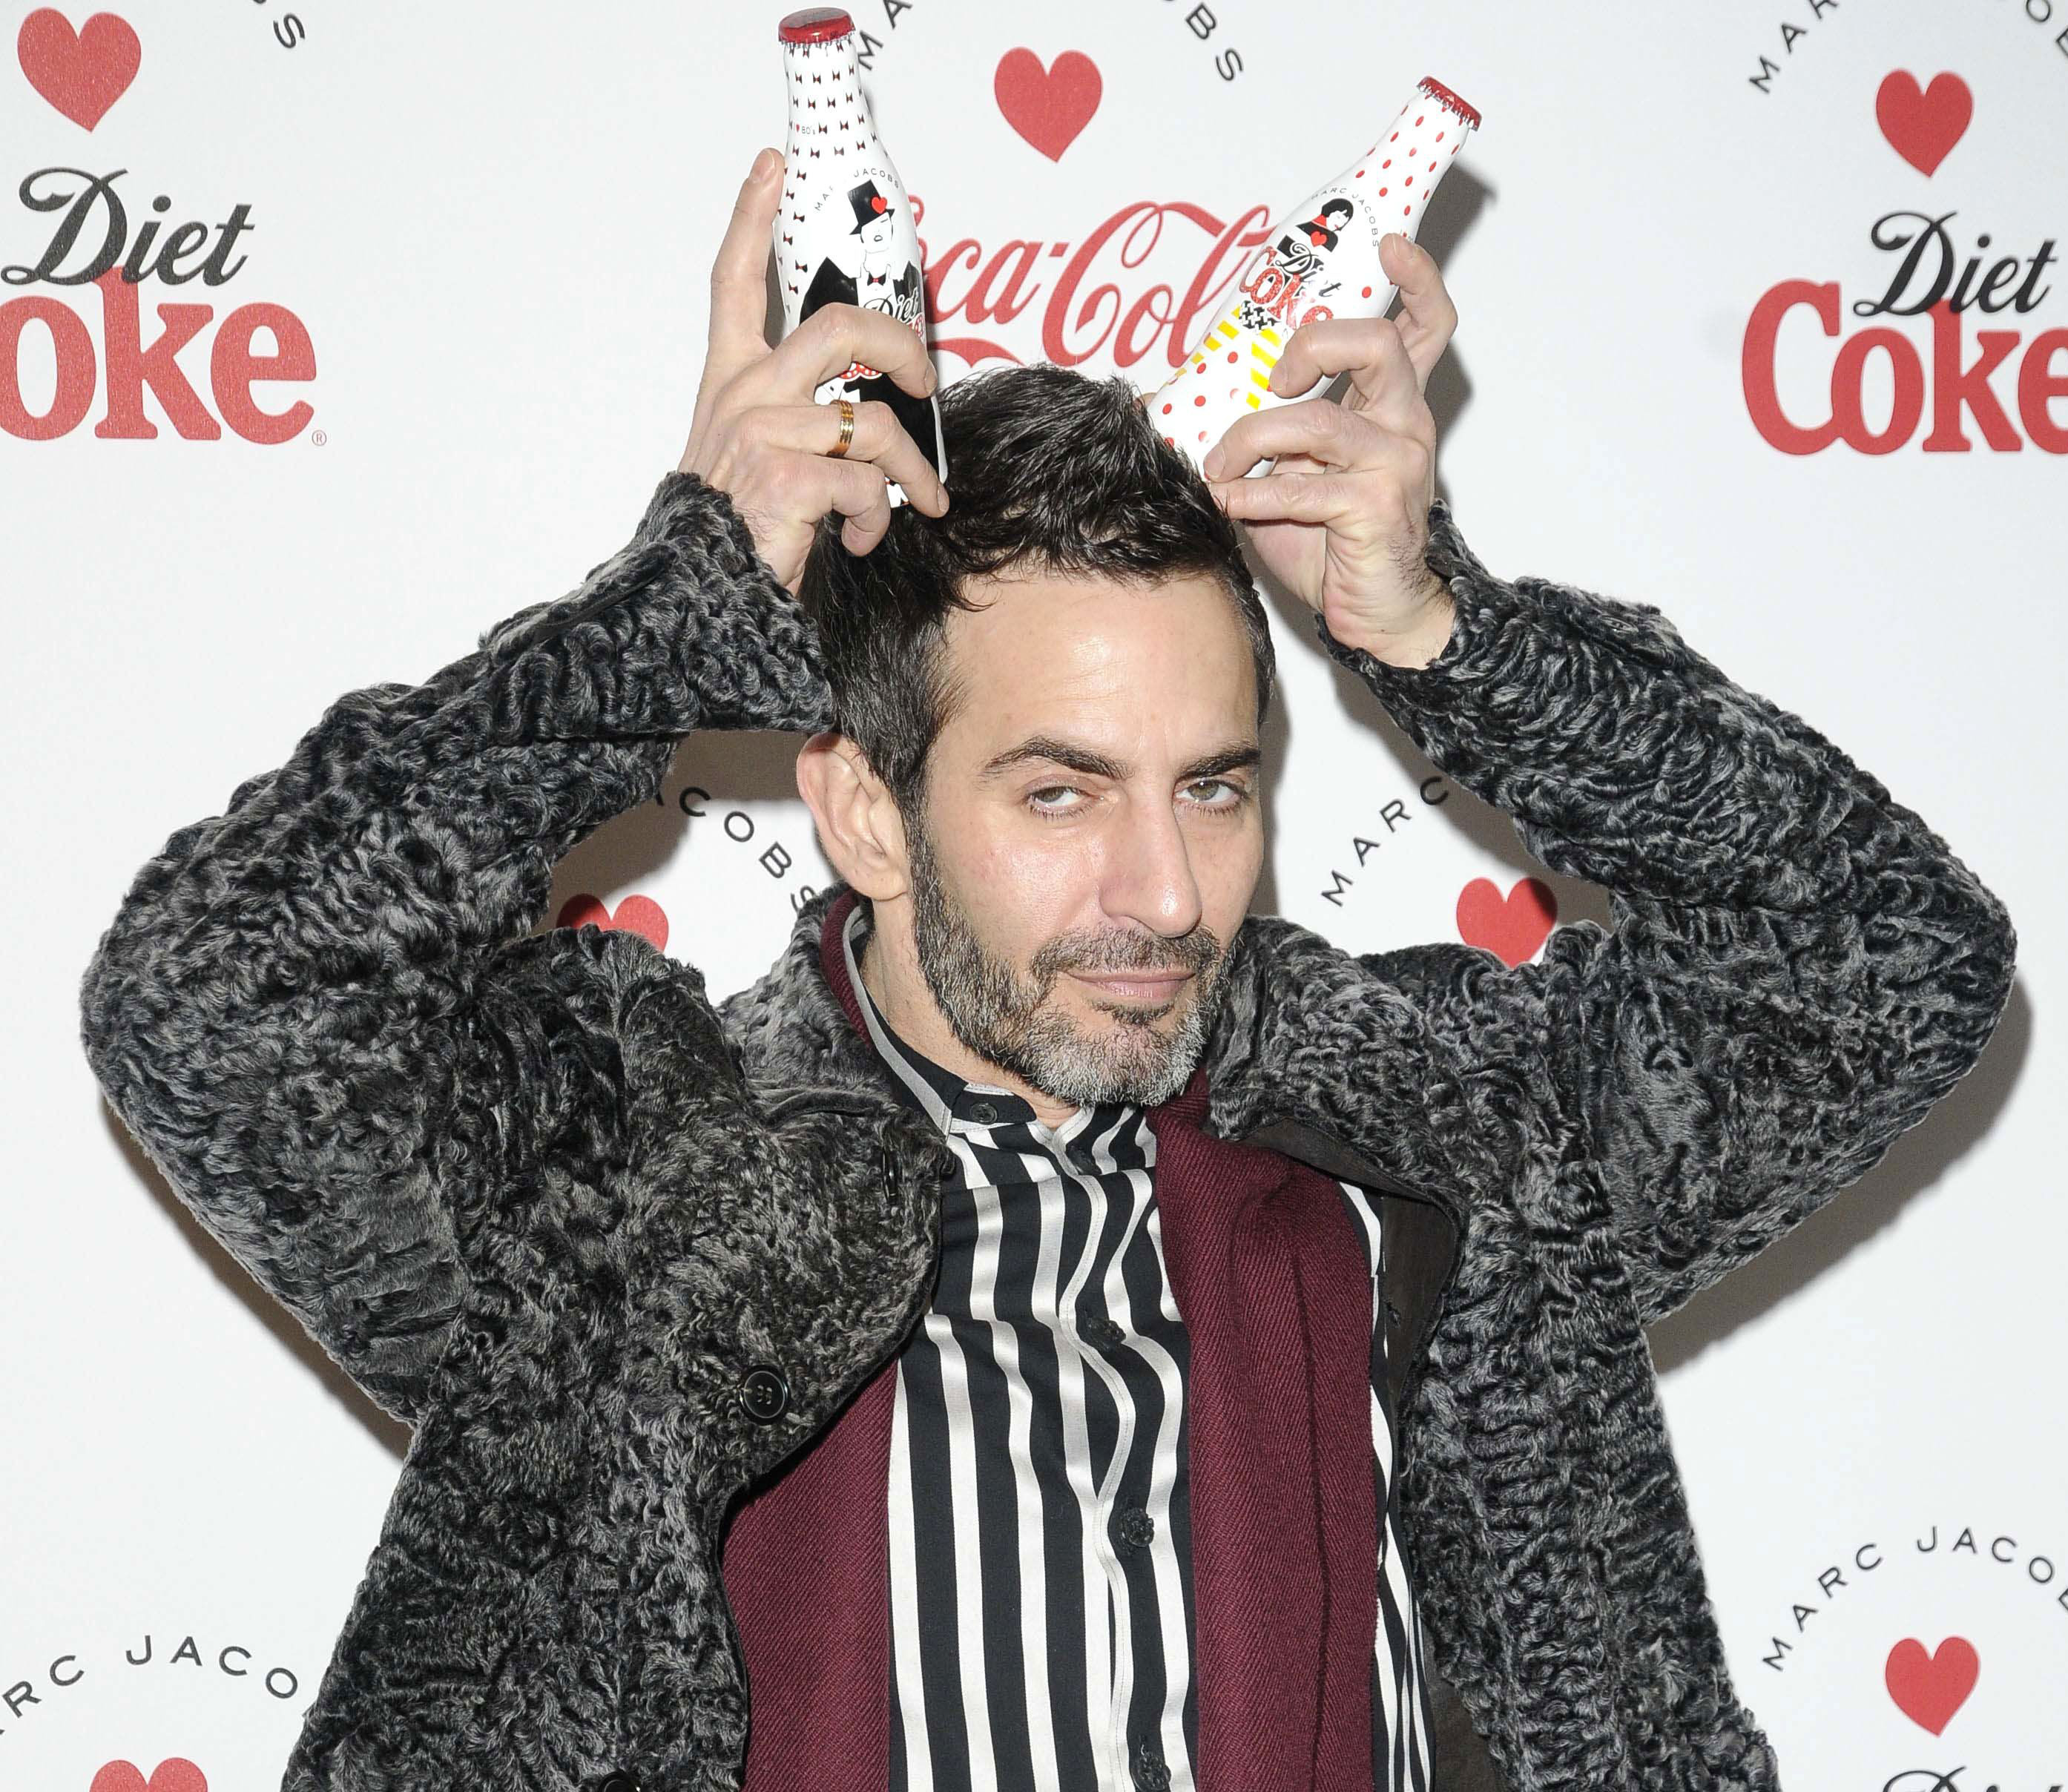 diet coke and marc jacobs partnership launch party, german gymnasium, london, britain - 11 mar 2013, ,